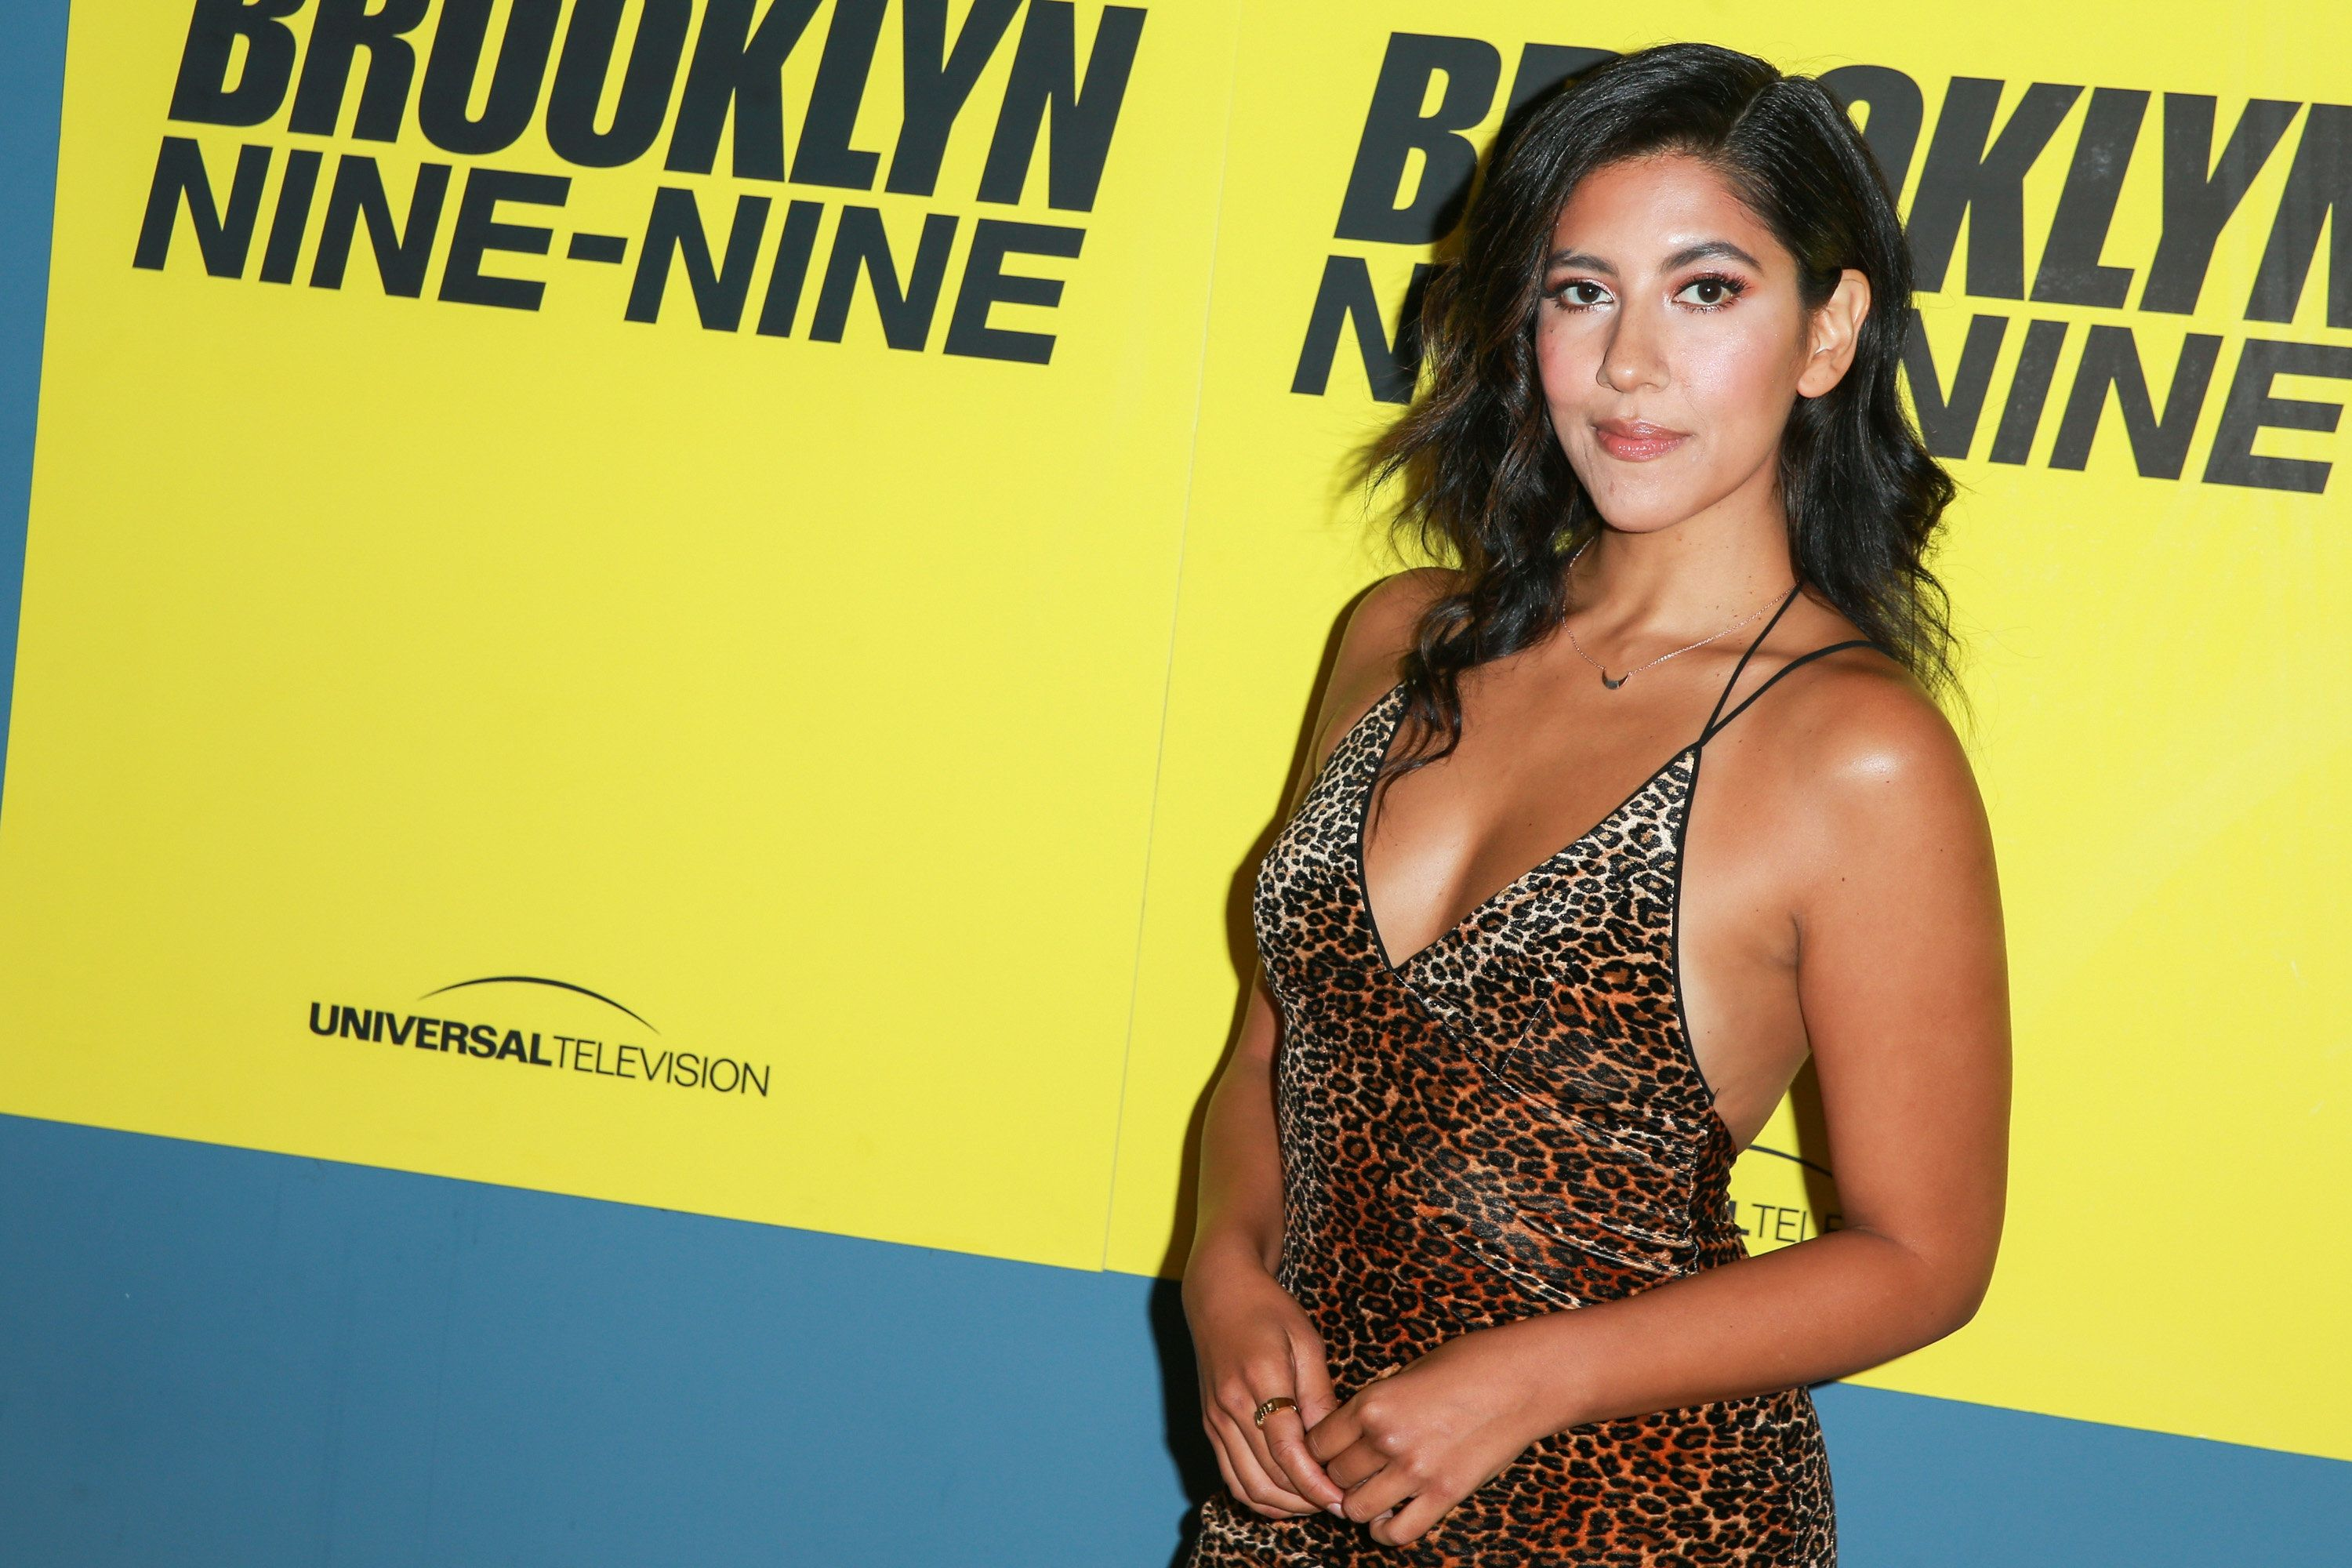 LOS ANGELES, CA - JUNE 14:  Stephanie Beatriz attends Fox's 'Brooklyn Nine-Nine' FYC @ UCB at UCB Sunset Theater on June 14, 2017 in Los Angeles, California.  (Photo by Rich Fury/Getty Images)